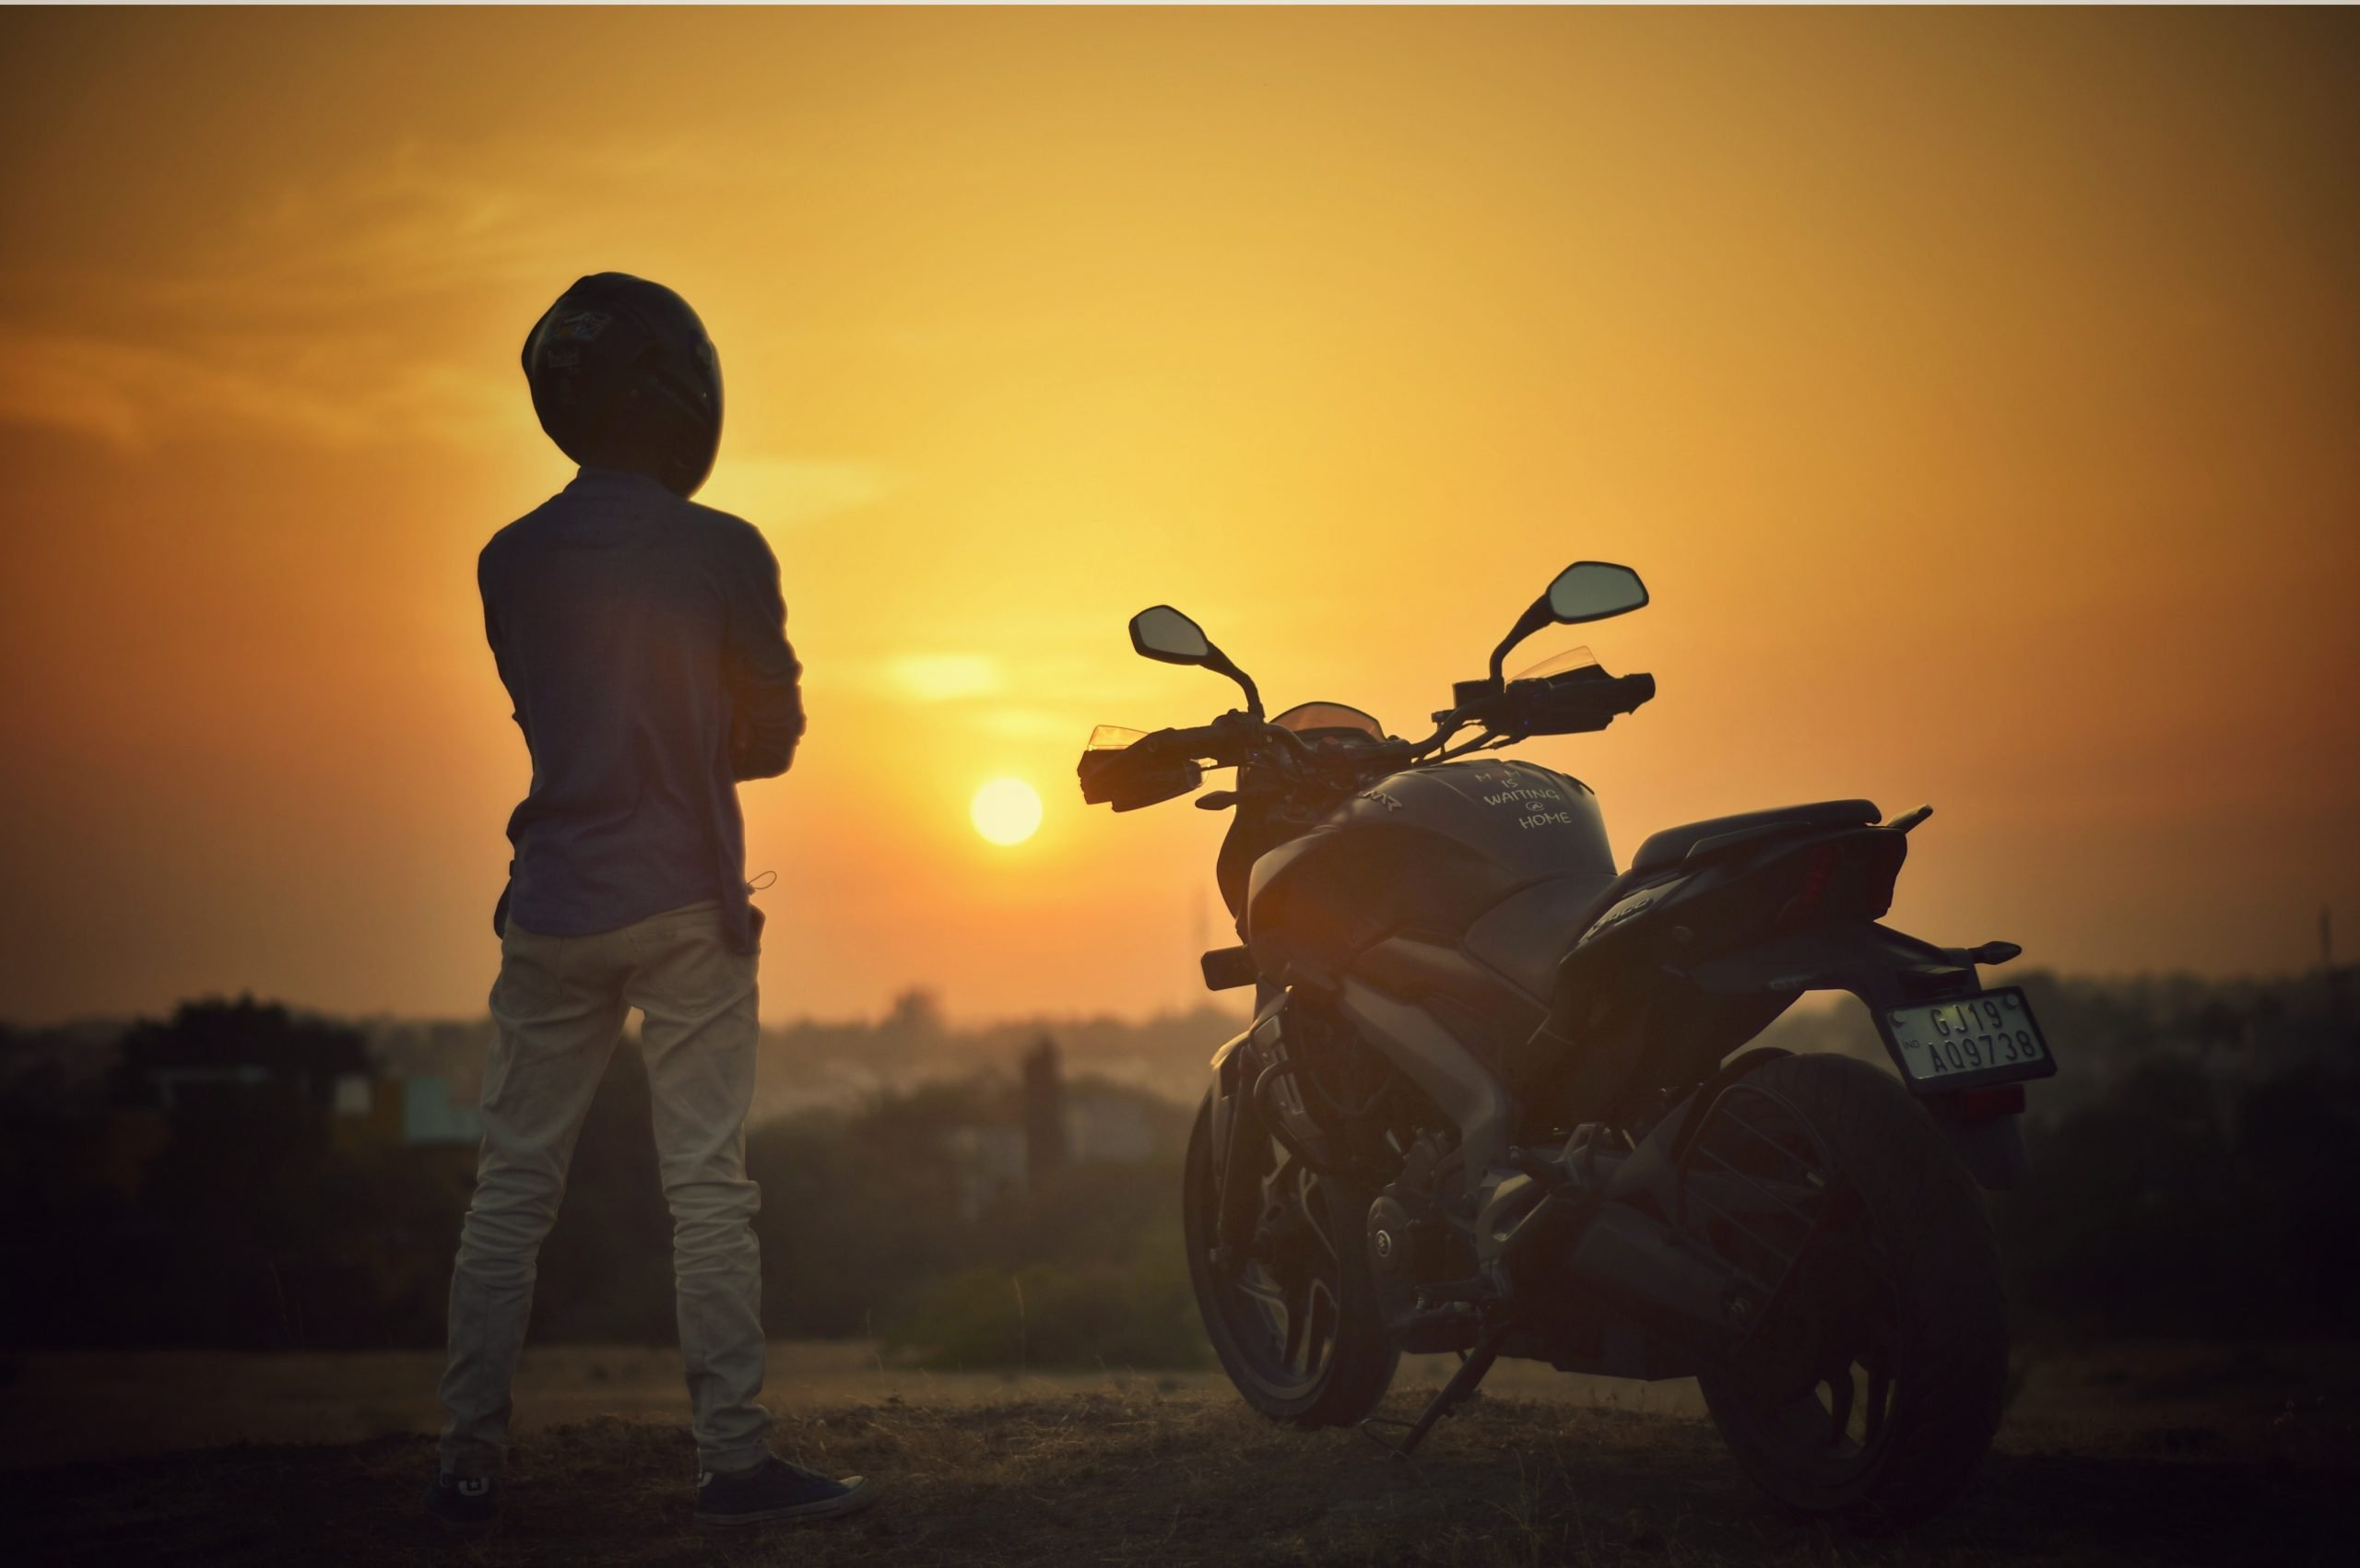 Rider and his Motorbike in the Sunset